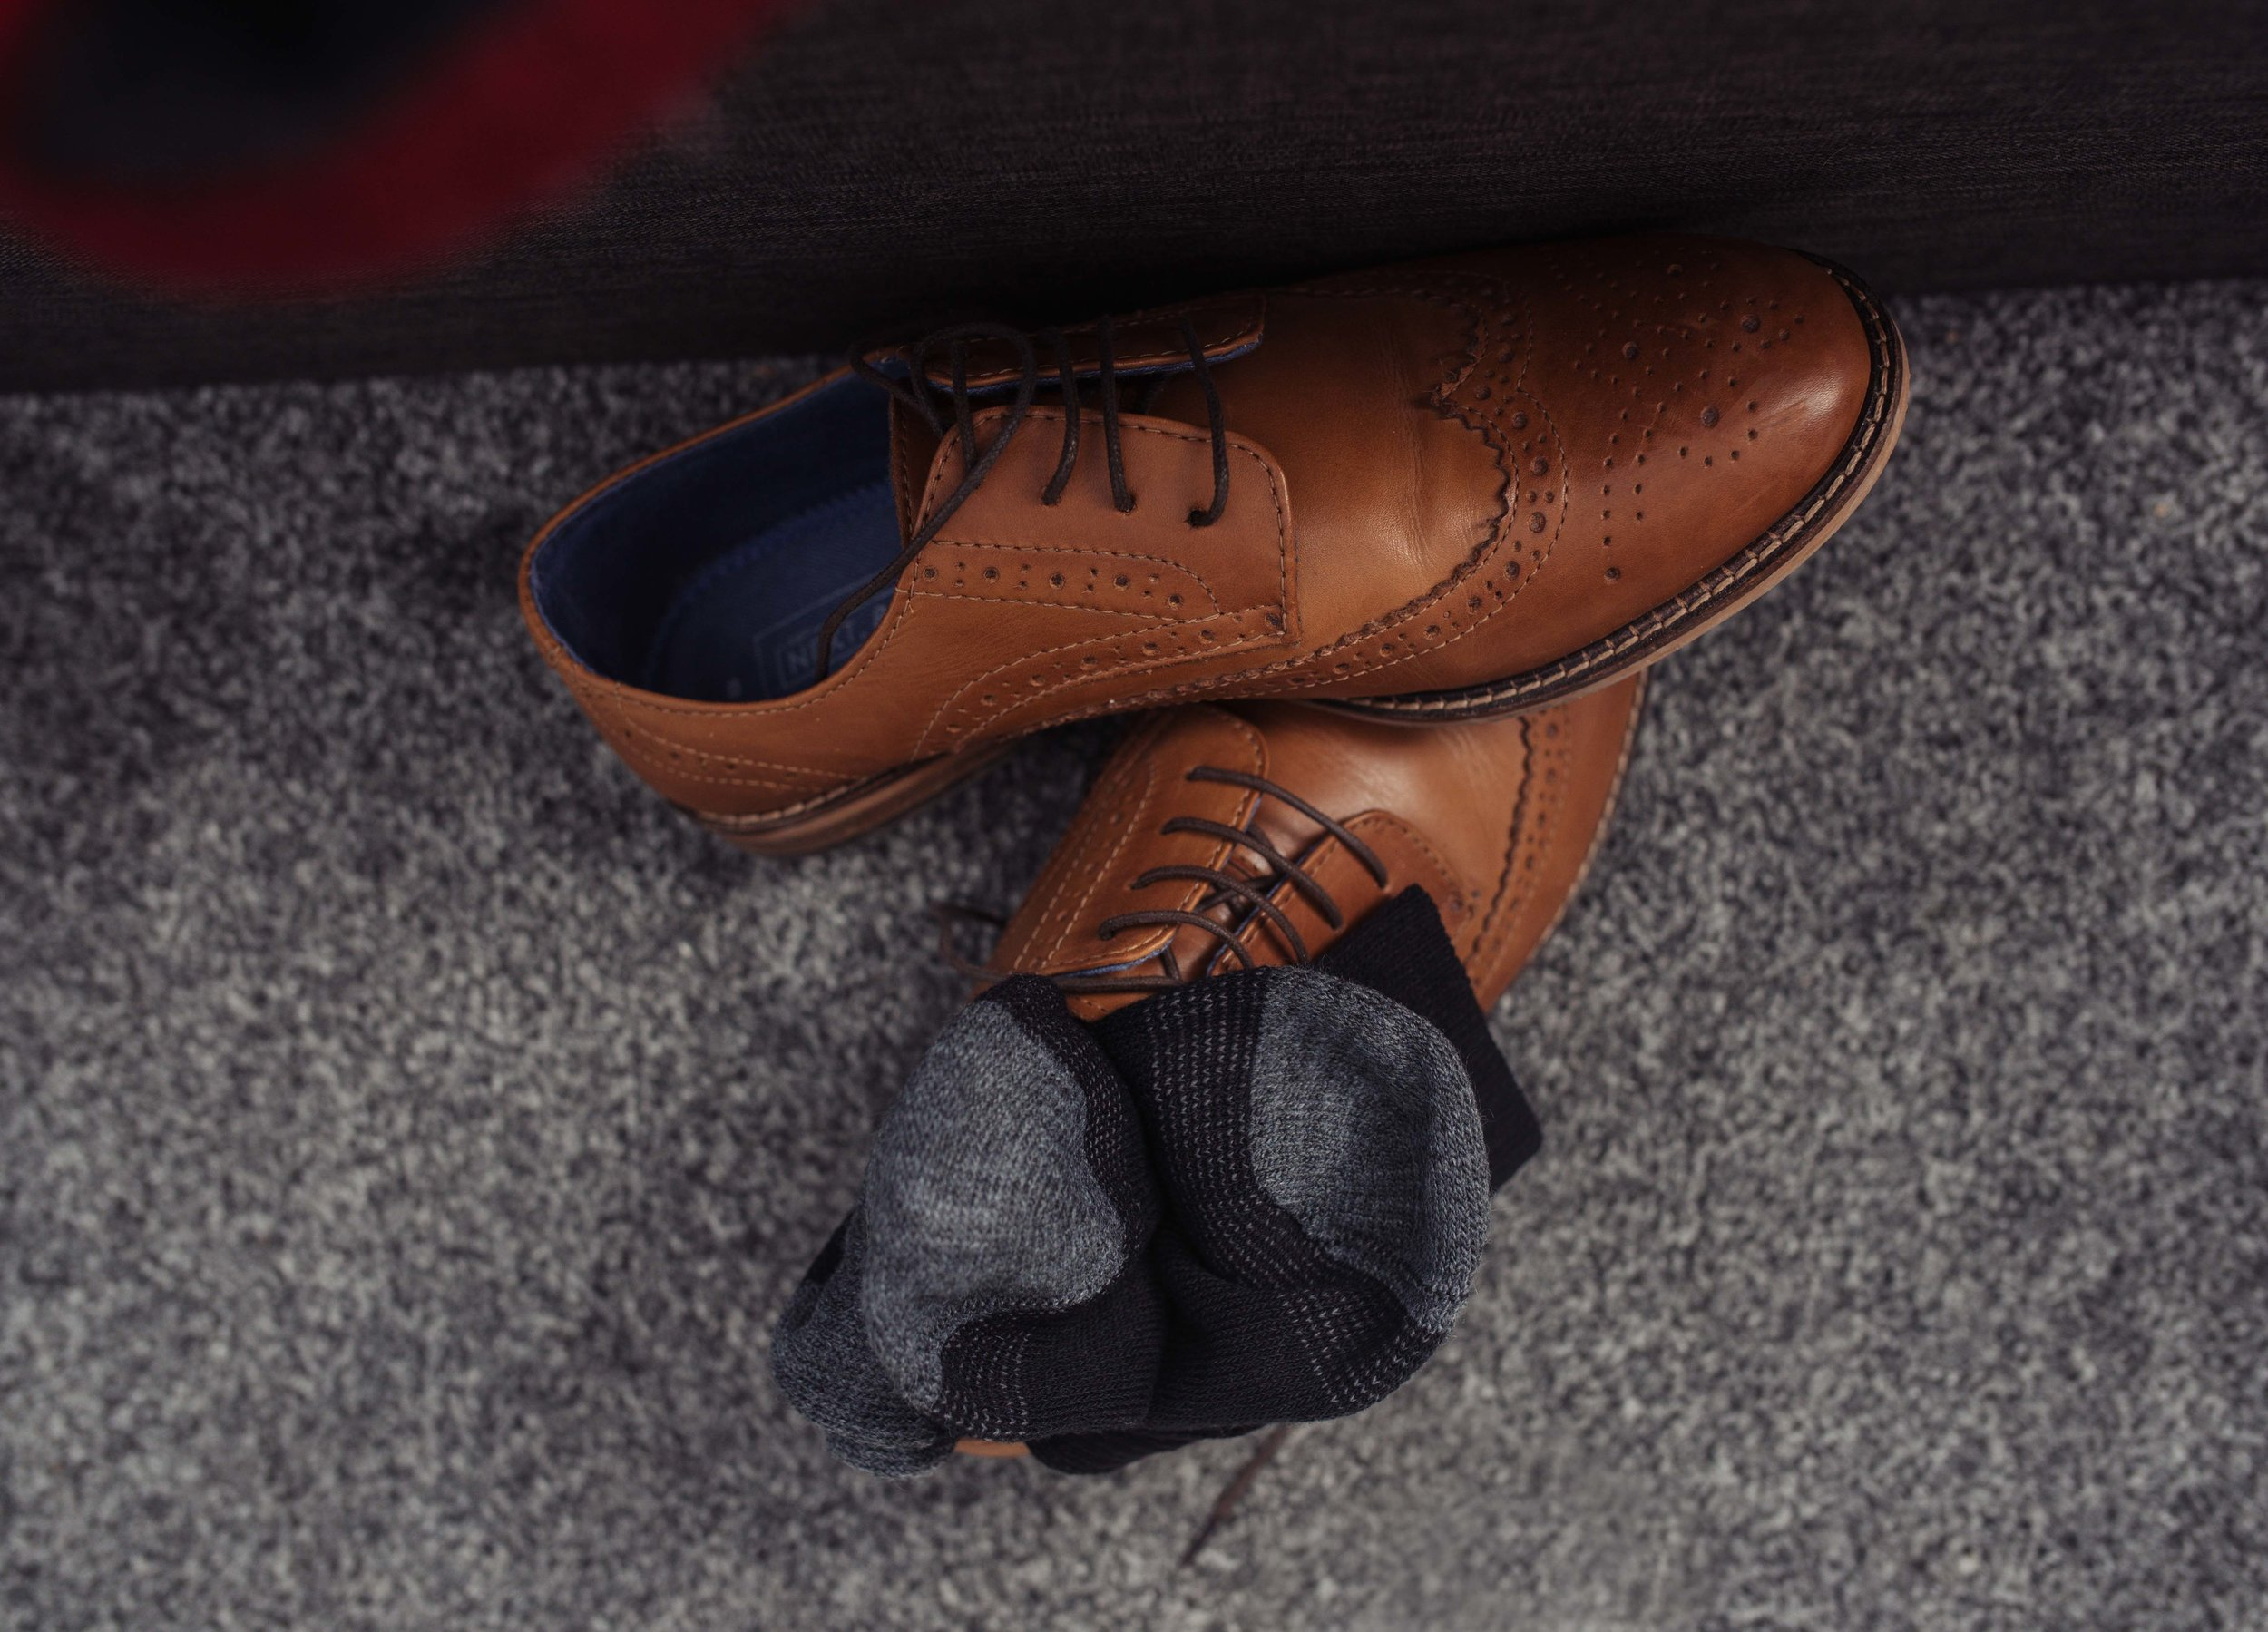 The grooms brown brogues lie on the floor with his socks on top of the shoes.